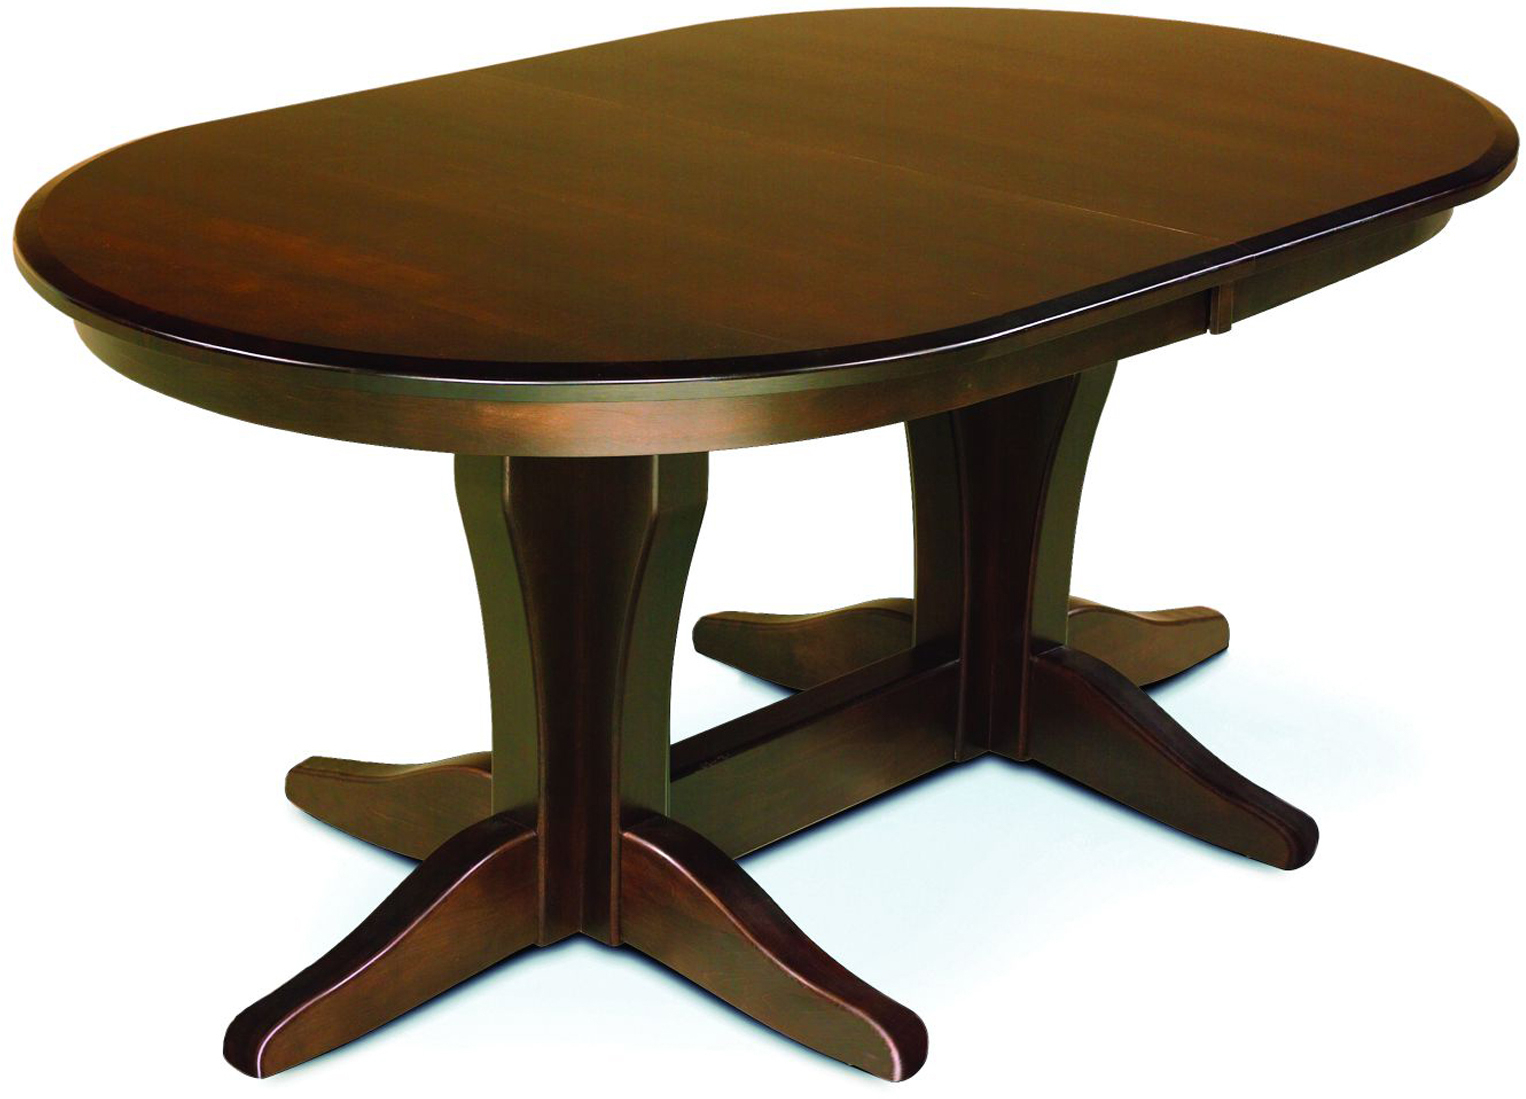 Vintage Double Pedestal Dining Table | Amish Double Pertaining To Most Up To Date Kirt Pedestal Dining Tables (View 2 of 15)